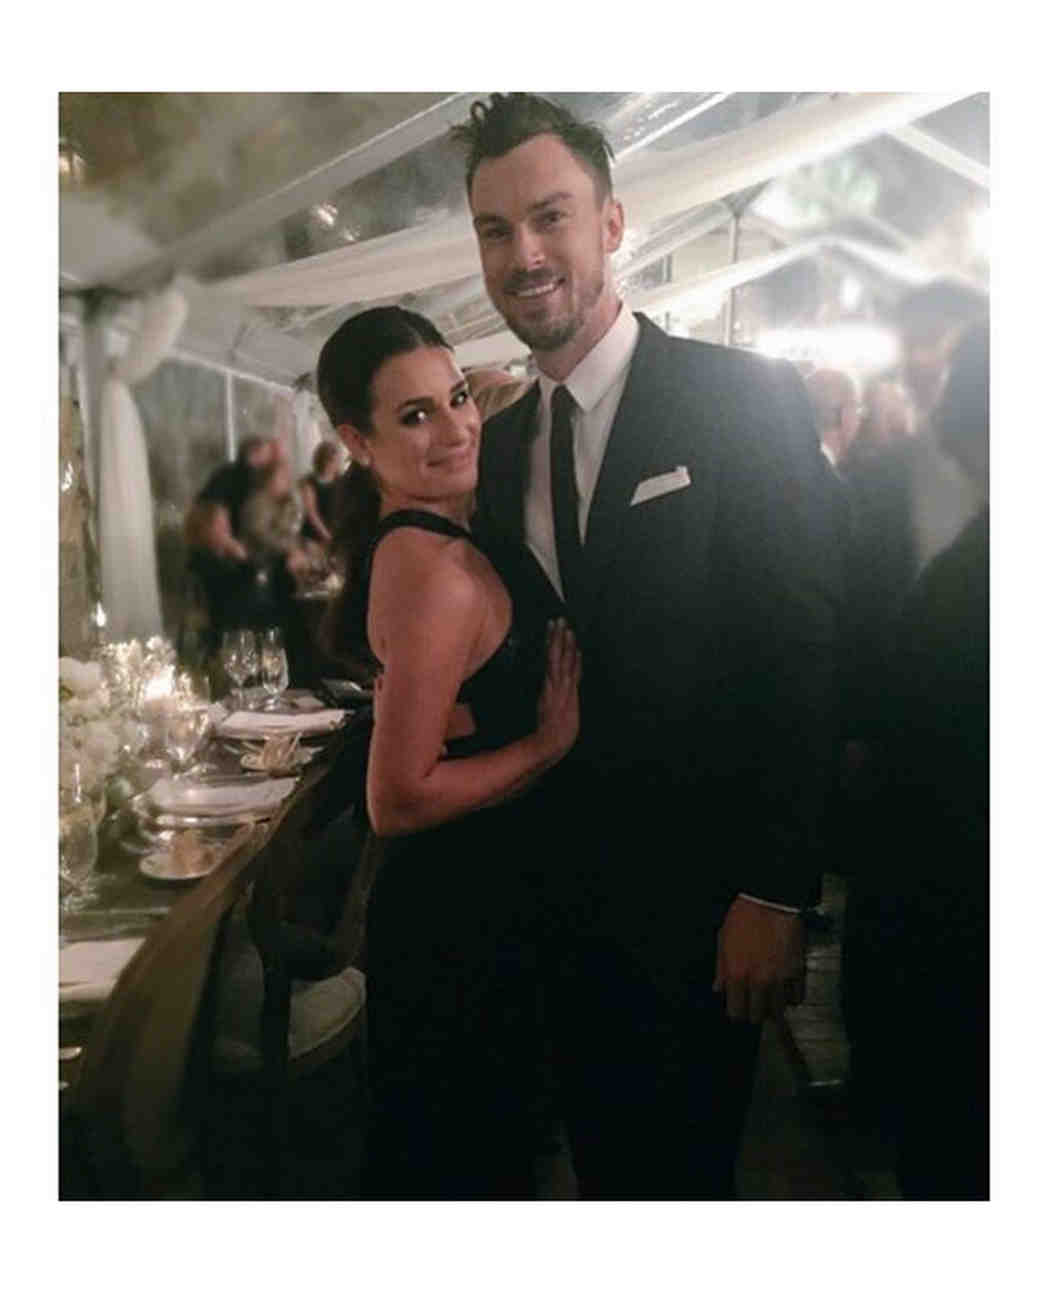 celebrity-couples-we-hope-get-engaged-lea-michele-matthew-paetz-1215.jpeg